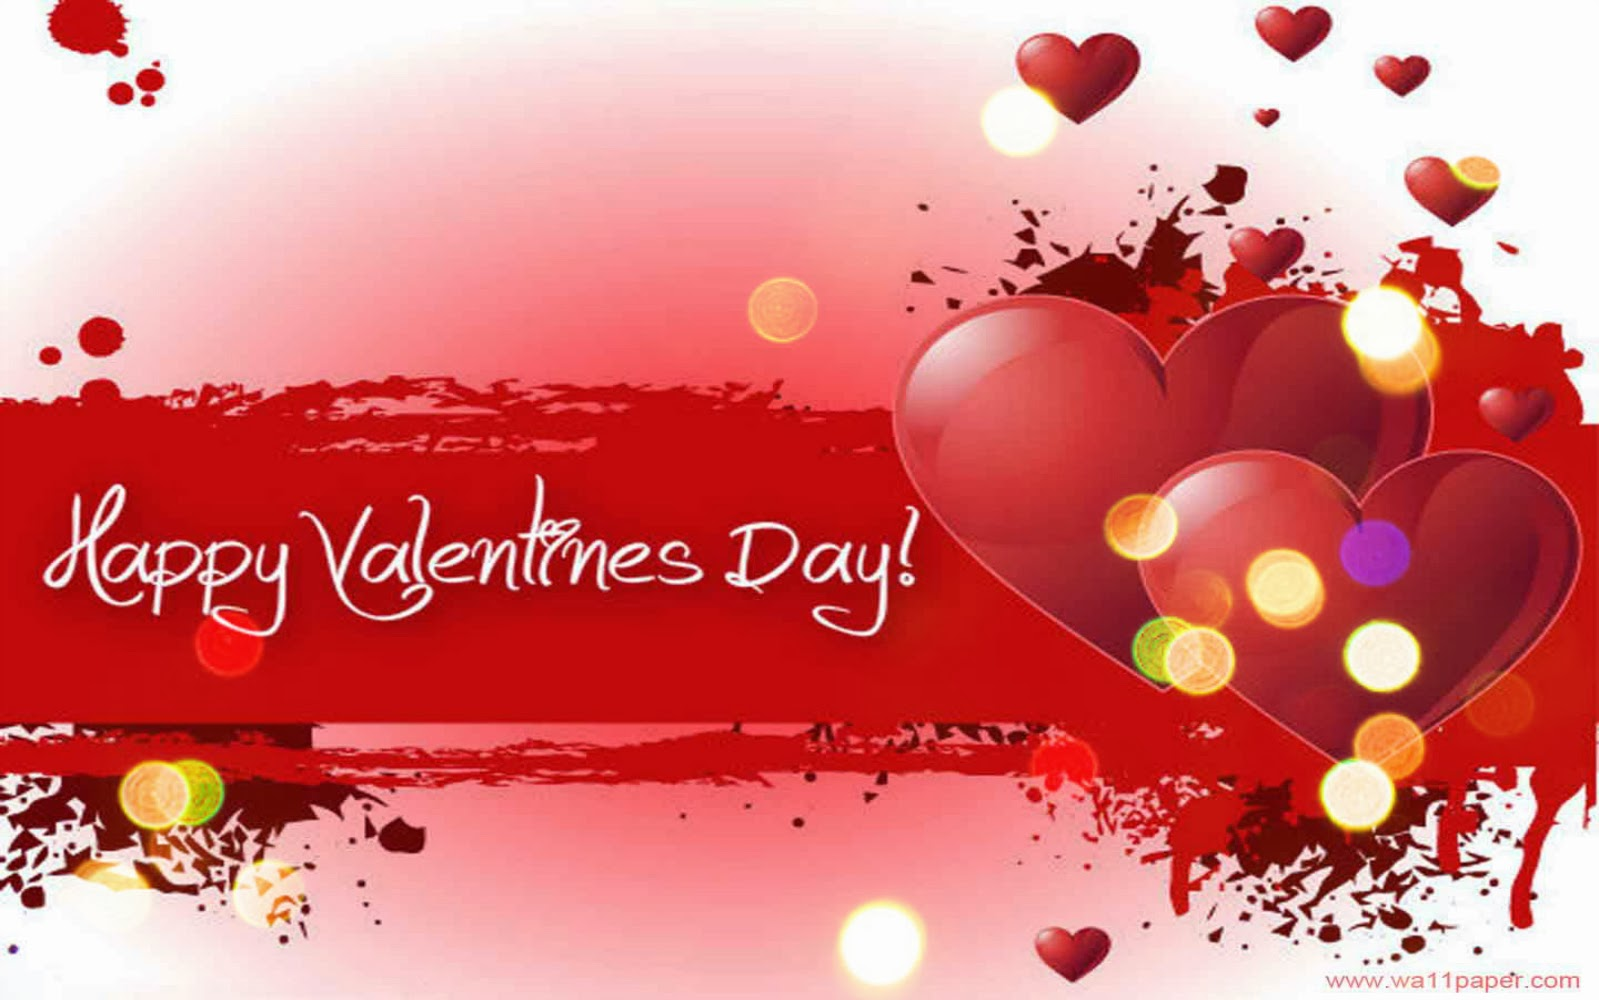 valentine day hd wallpapers, valentine day 2014 free wallpapers, valentine day double heart wallpapers, valentine day special effect wallpapers